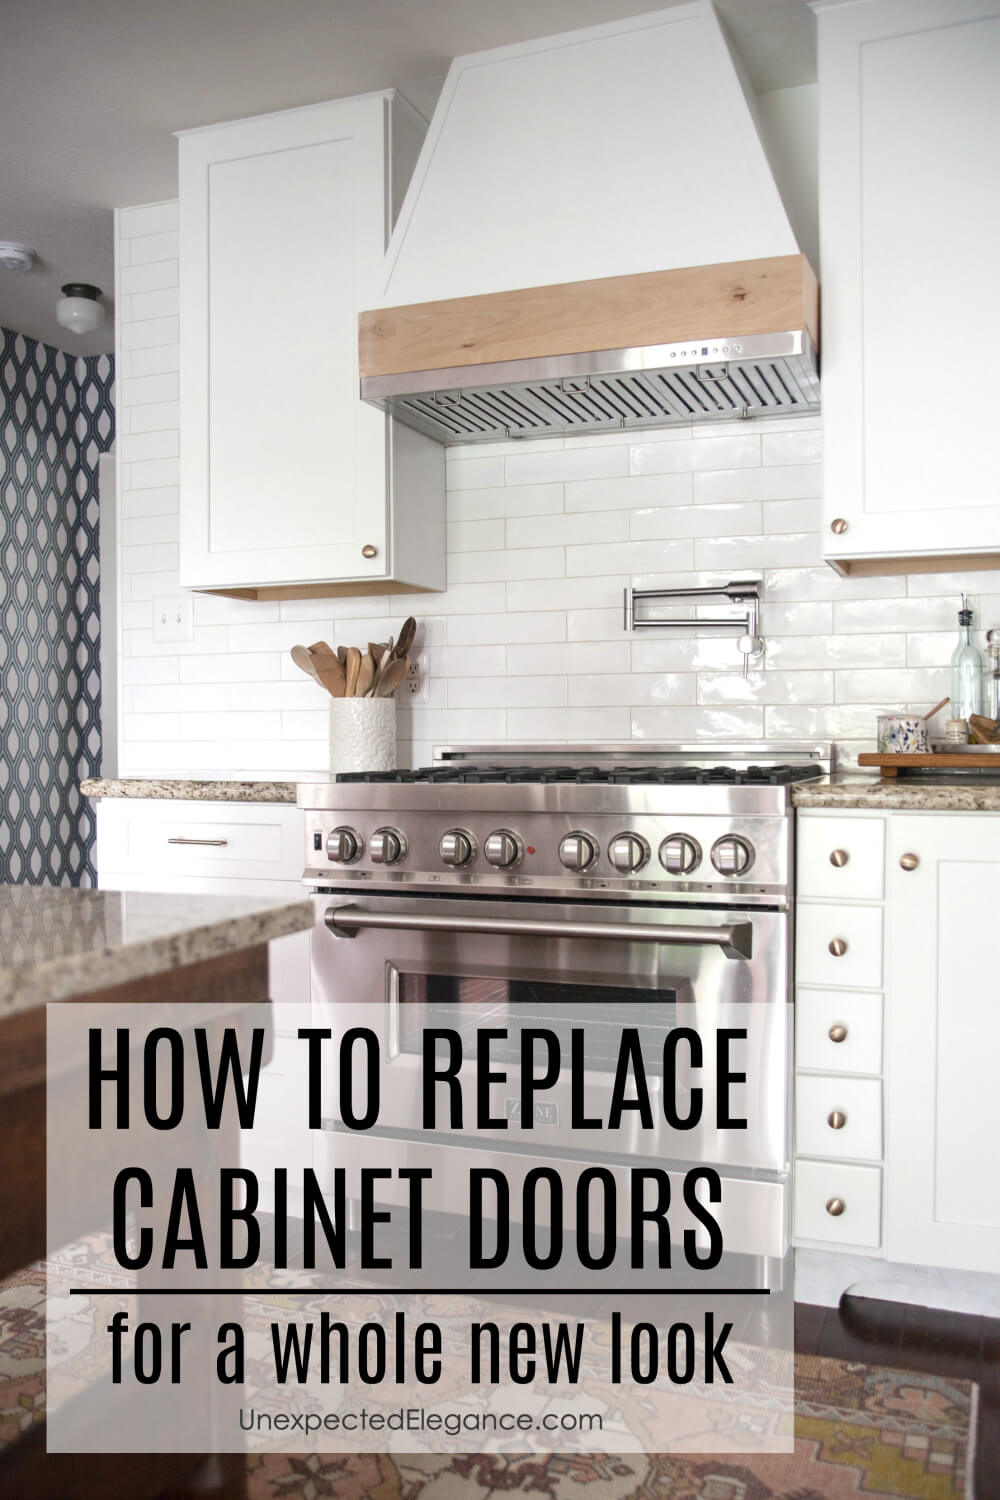 Replacing Cabinet Doors Unexpected Elegance